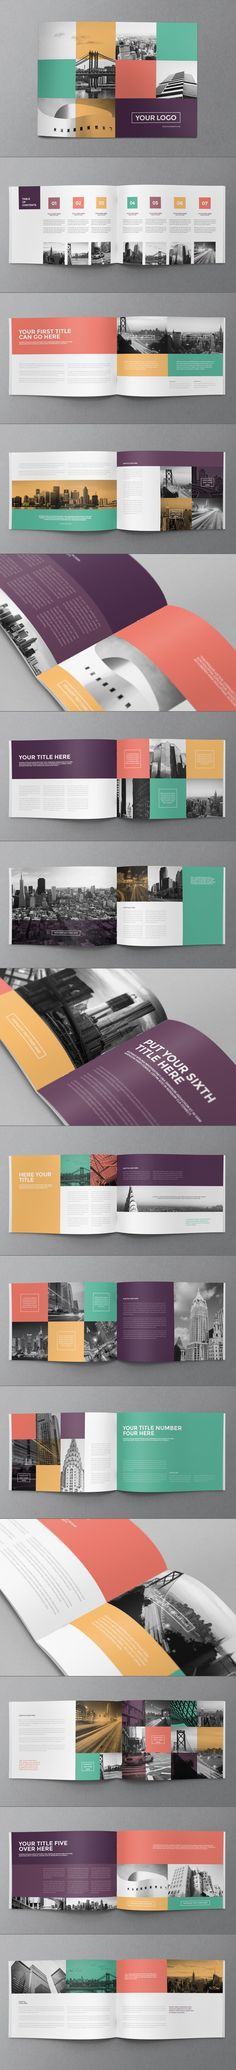 Buy Colorful Squares Brochure by AbraDesign on GraphicRiver. COLORFUL SQUARES BROCHURE This brochure is an ideal way to showcase your business in an original way. Layout Design, Graphisches Design, Print Layout, Graphic Design Layouts, Graphic Design Inspiration, Cover Design, Print Design, Design Brochure, Booklet Design